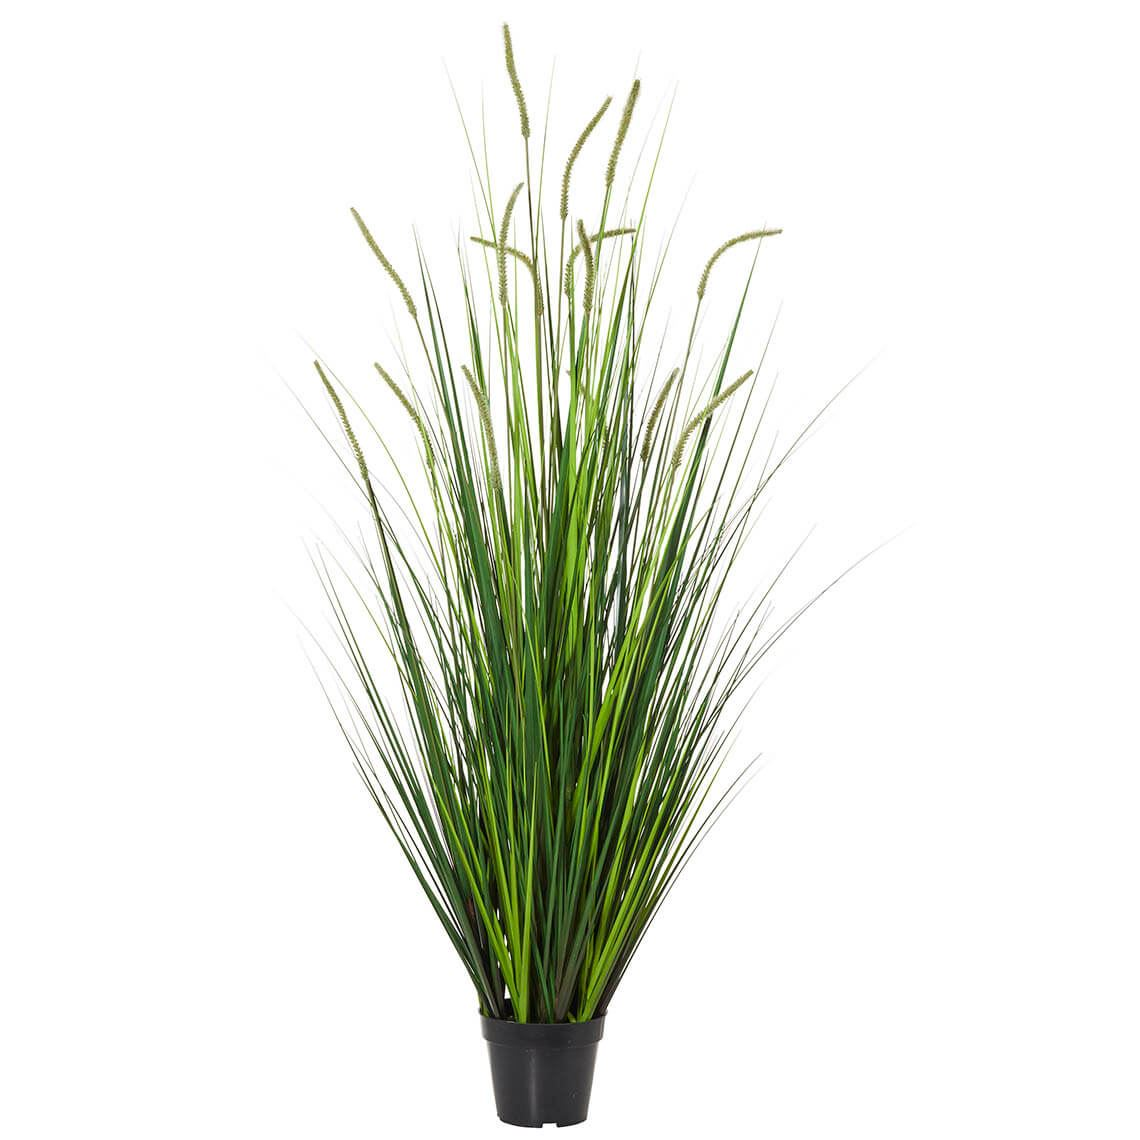 Pond Grass Size W 60cm x D 60cm x H 140cm in Green Plastic/Fabric/Wire Freedom by Freedom, a Plants for sale on Style Sourcebook